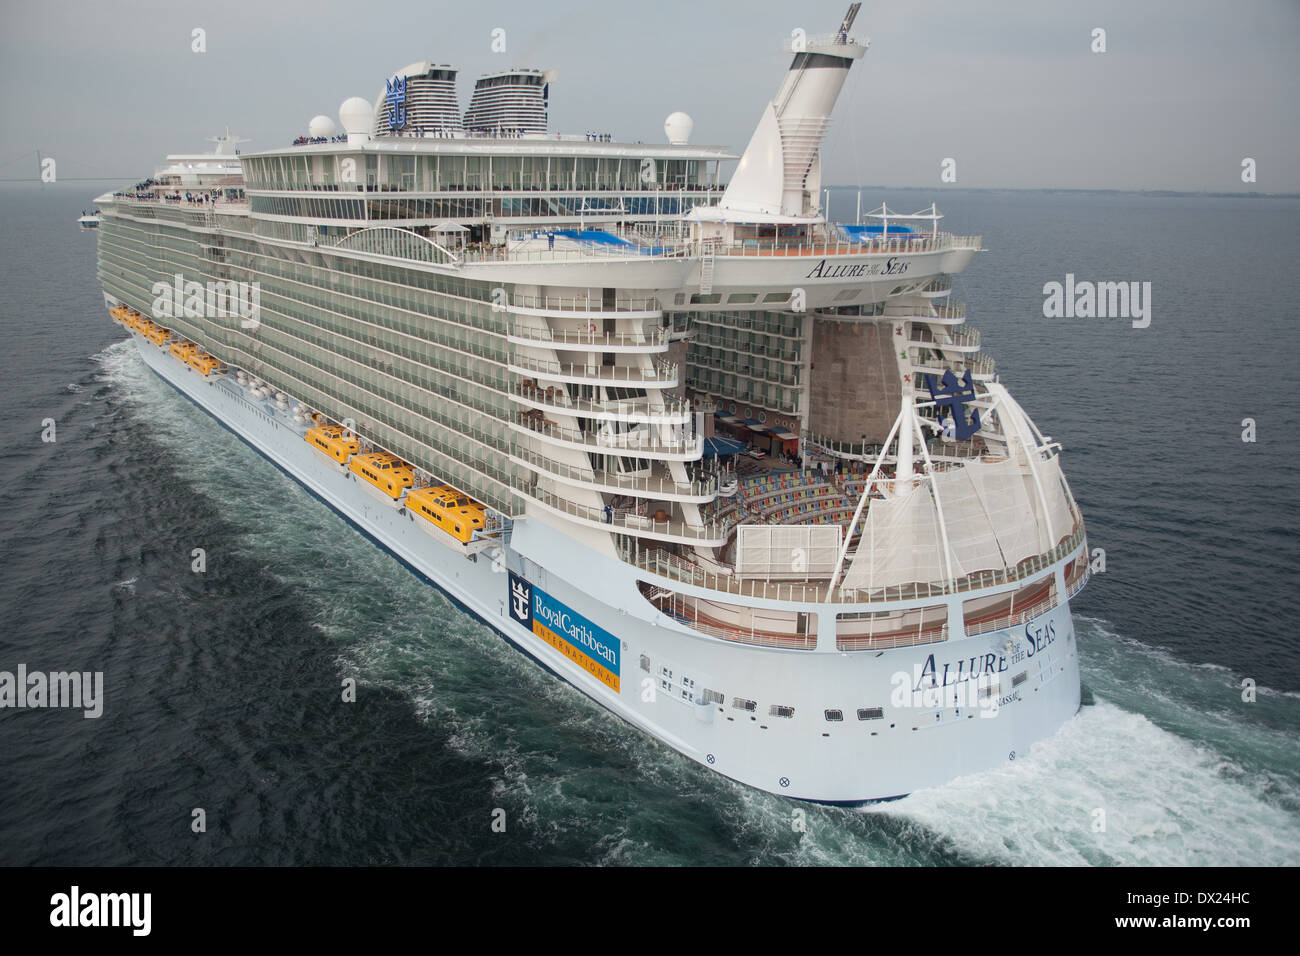 Aerial Photo Of Allure Of The Seas A Cruise Ship Owned By Royal Stock Photo Royalty Free Image ...